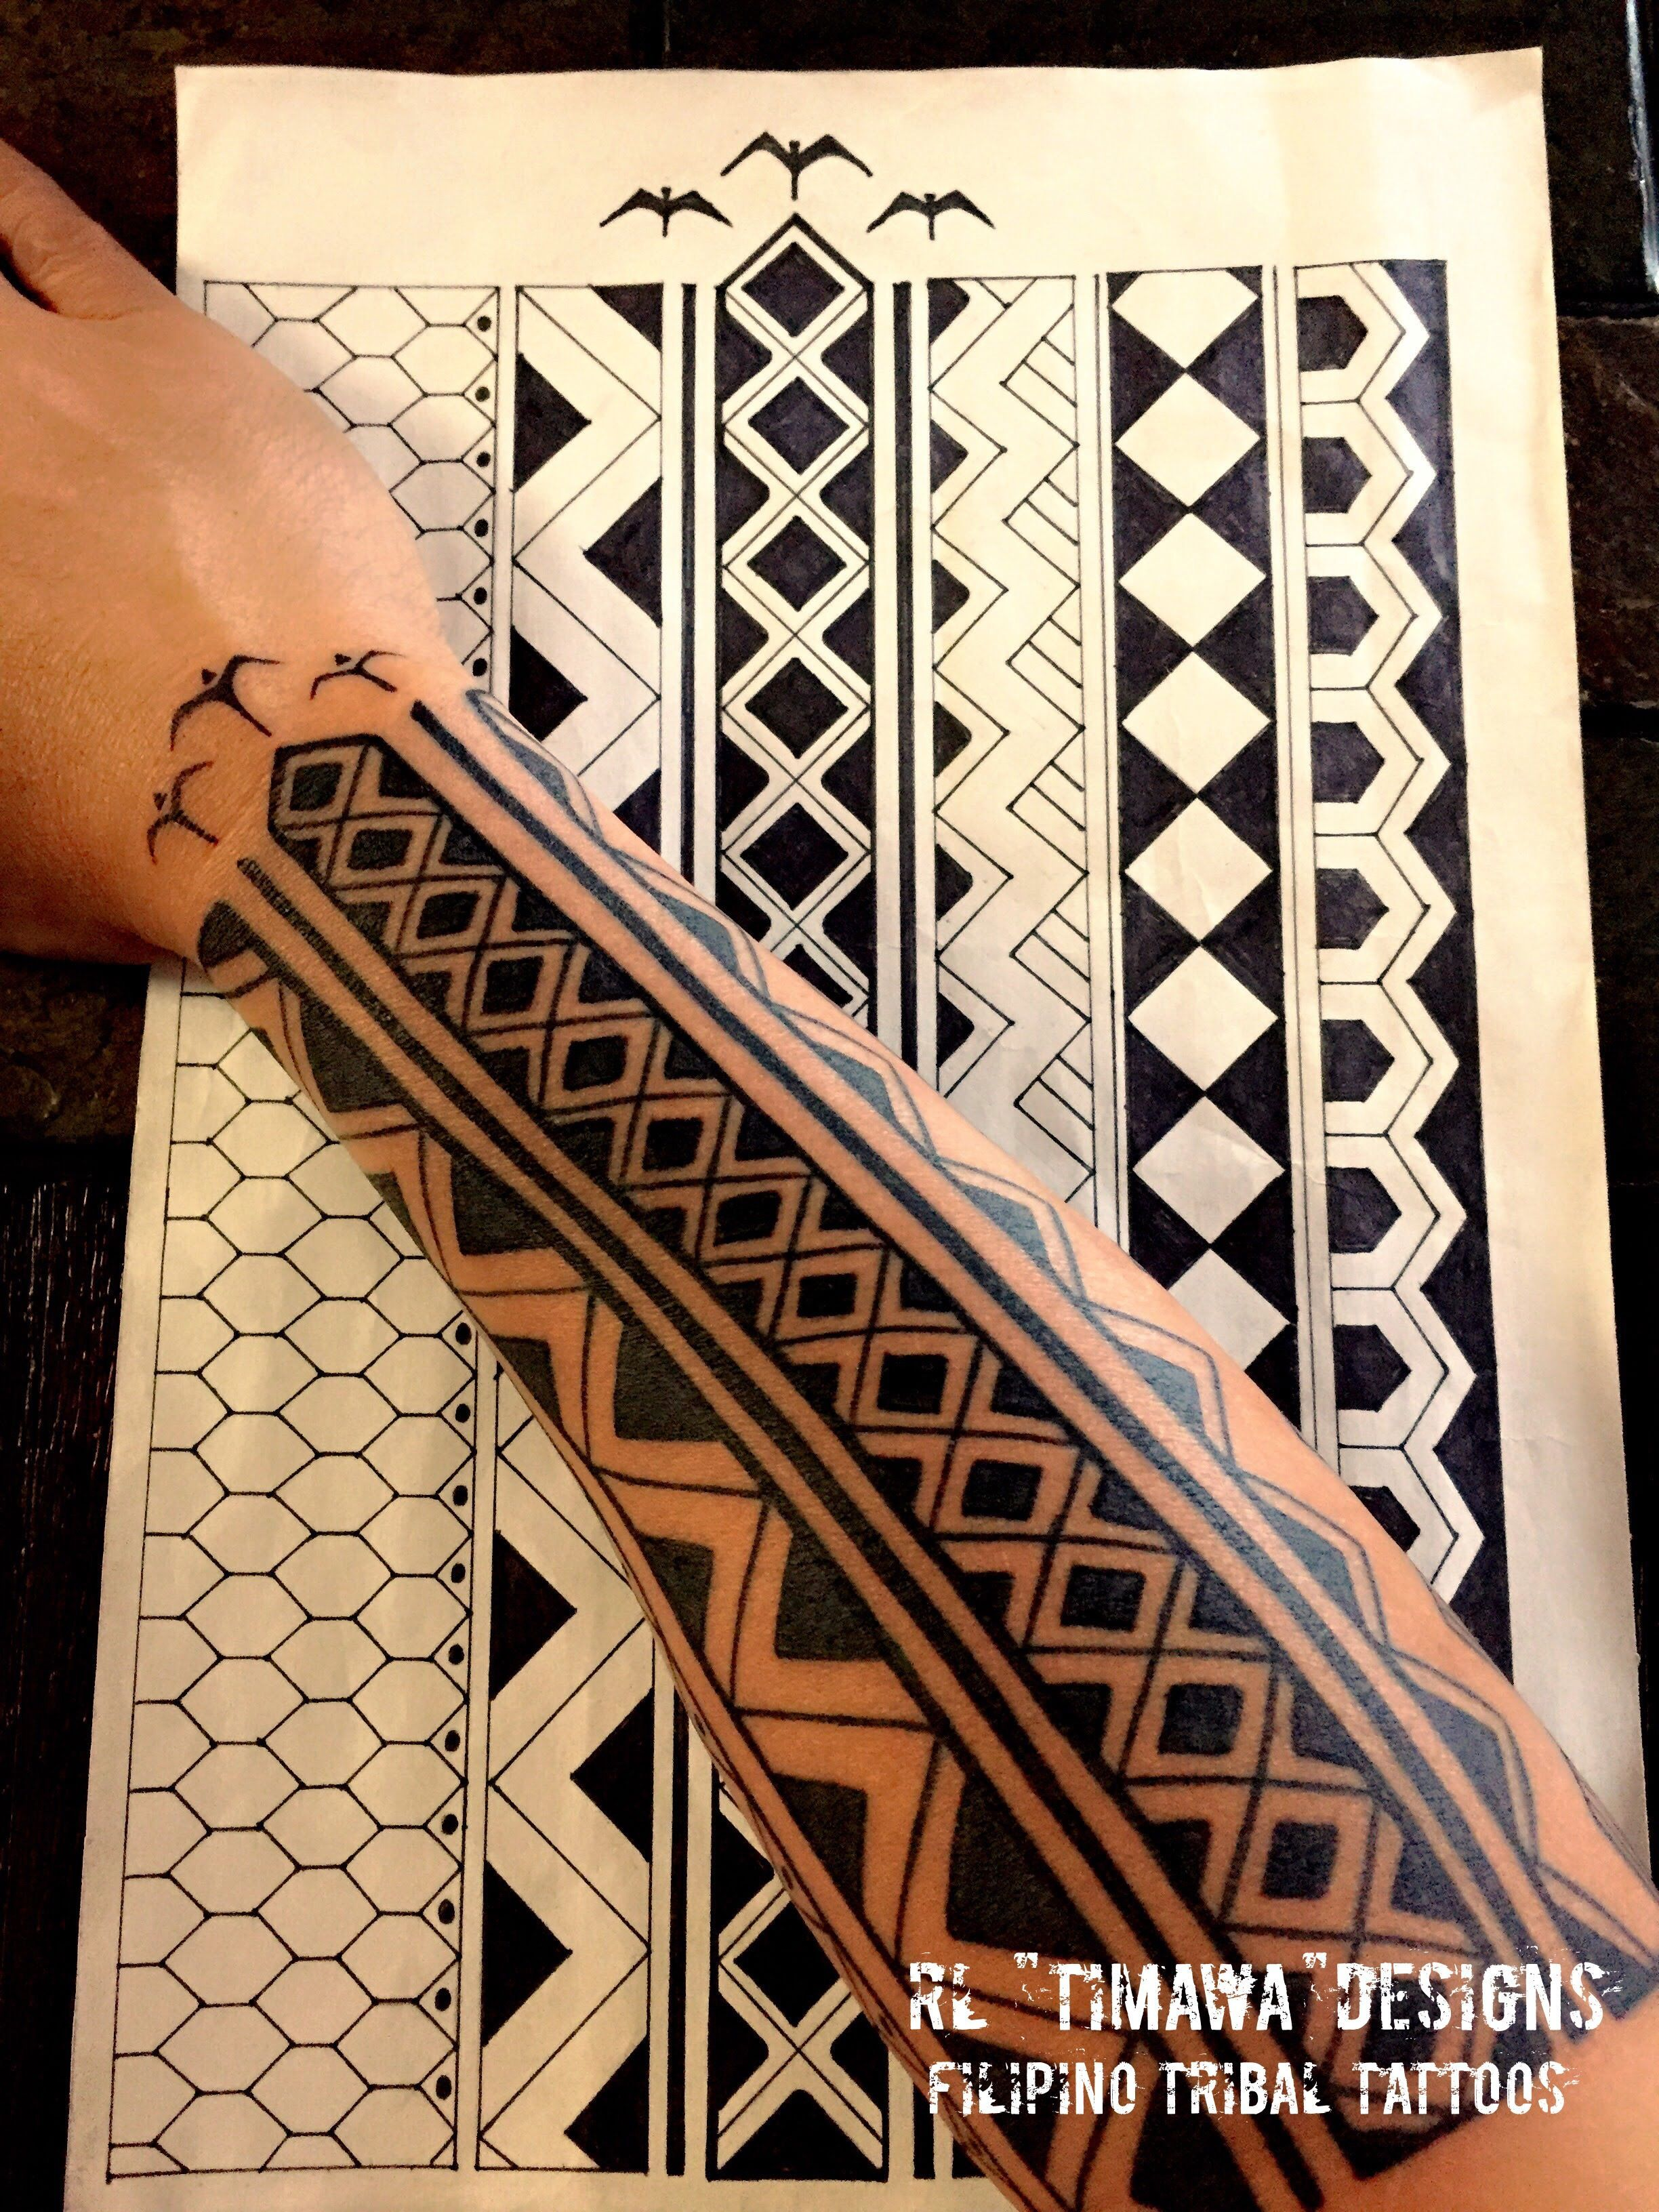 Contemporary Filipino Tribal Tattoo Designs Samoan Tattoos